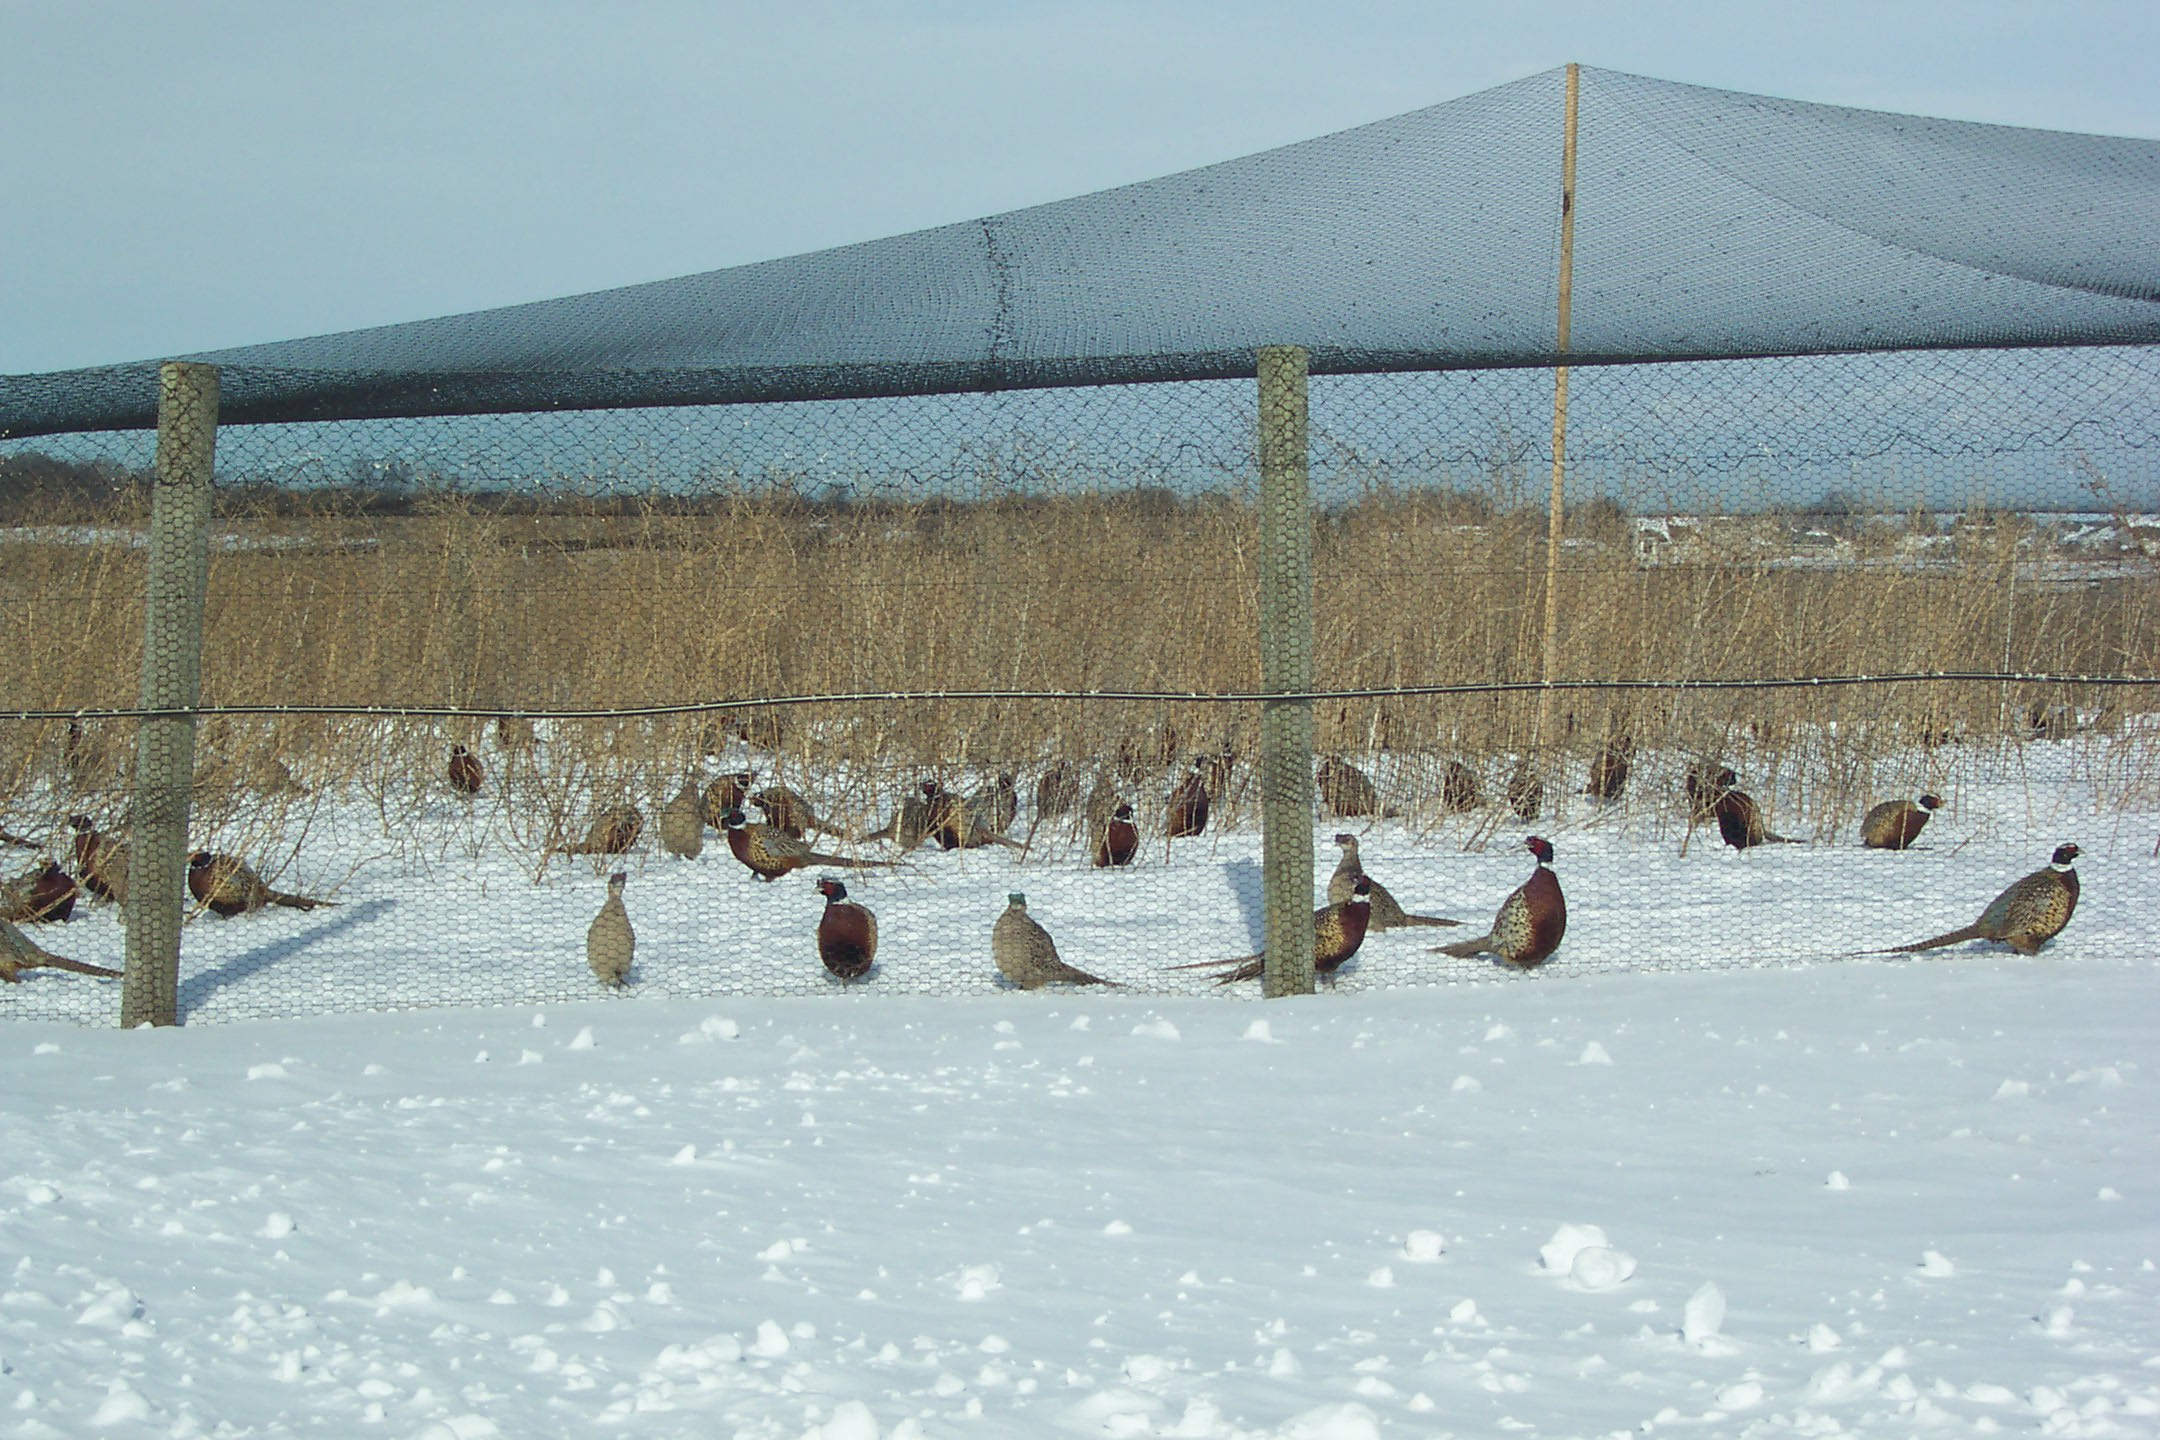 Winter in the Brooder Barns Keeps Employees Vigilant